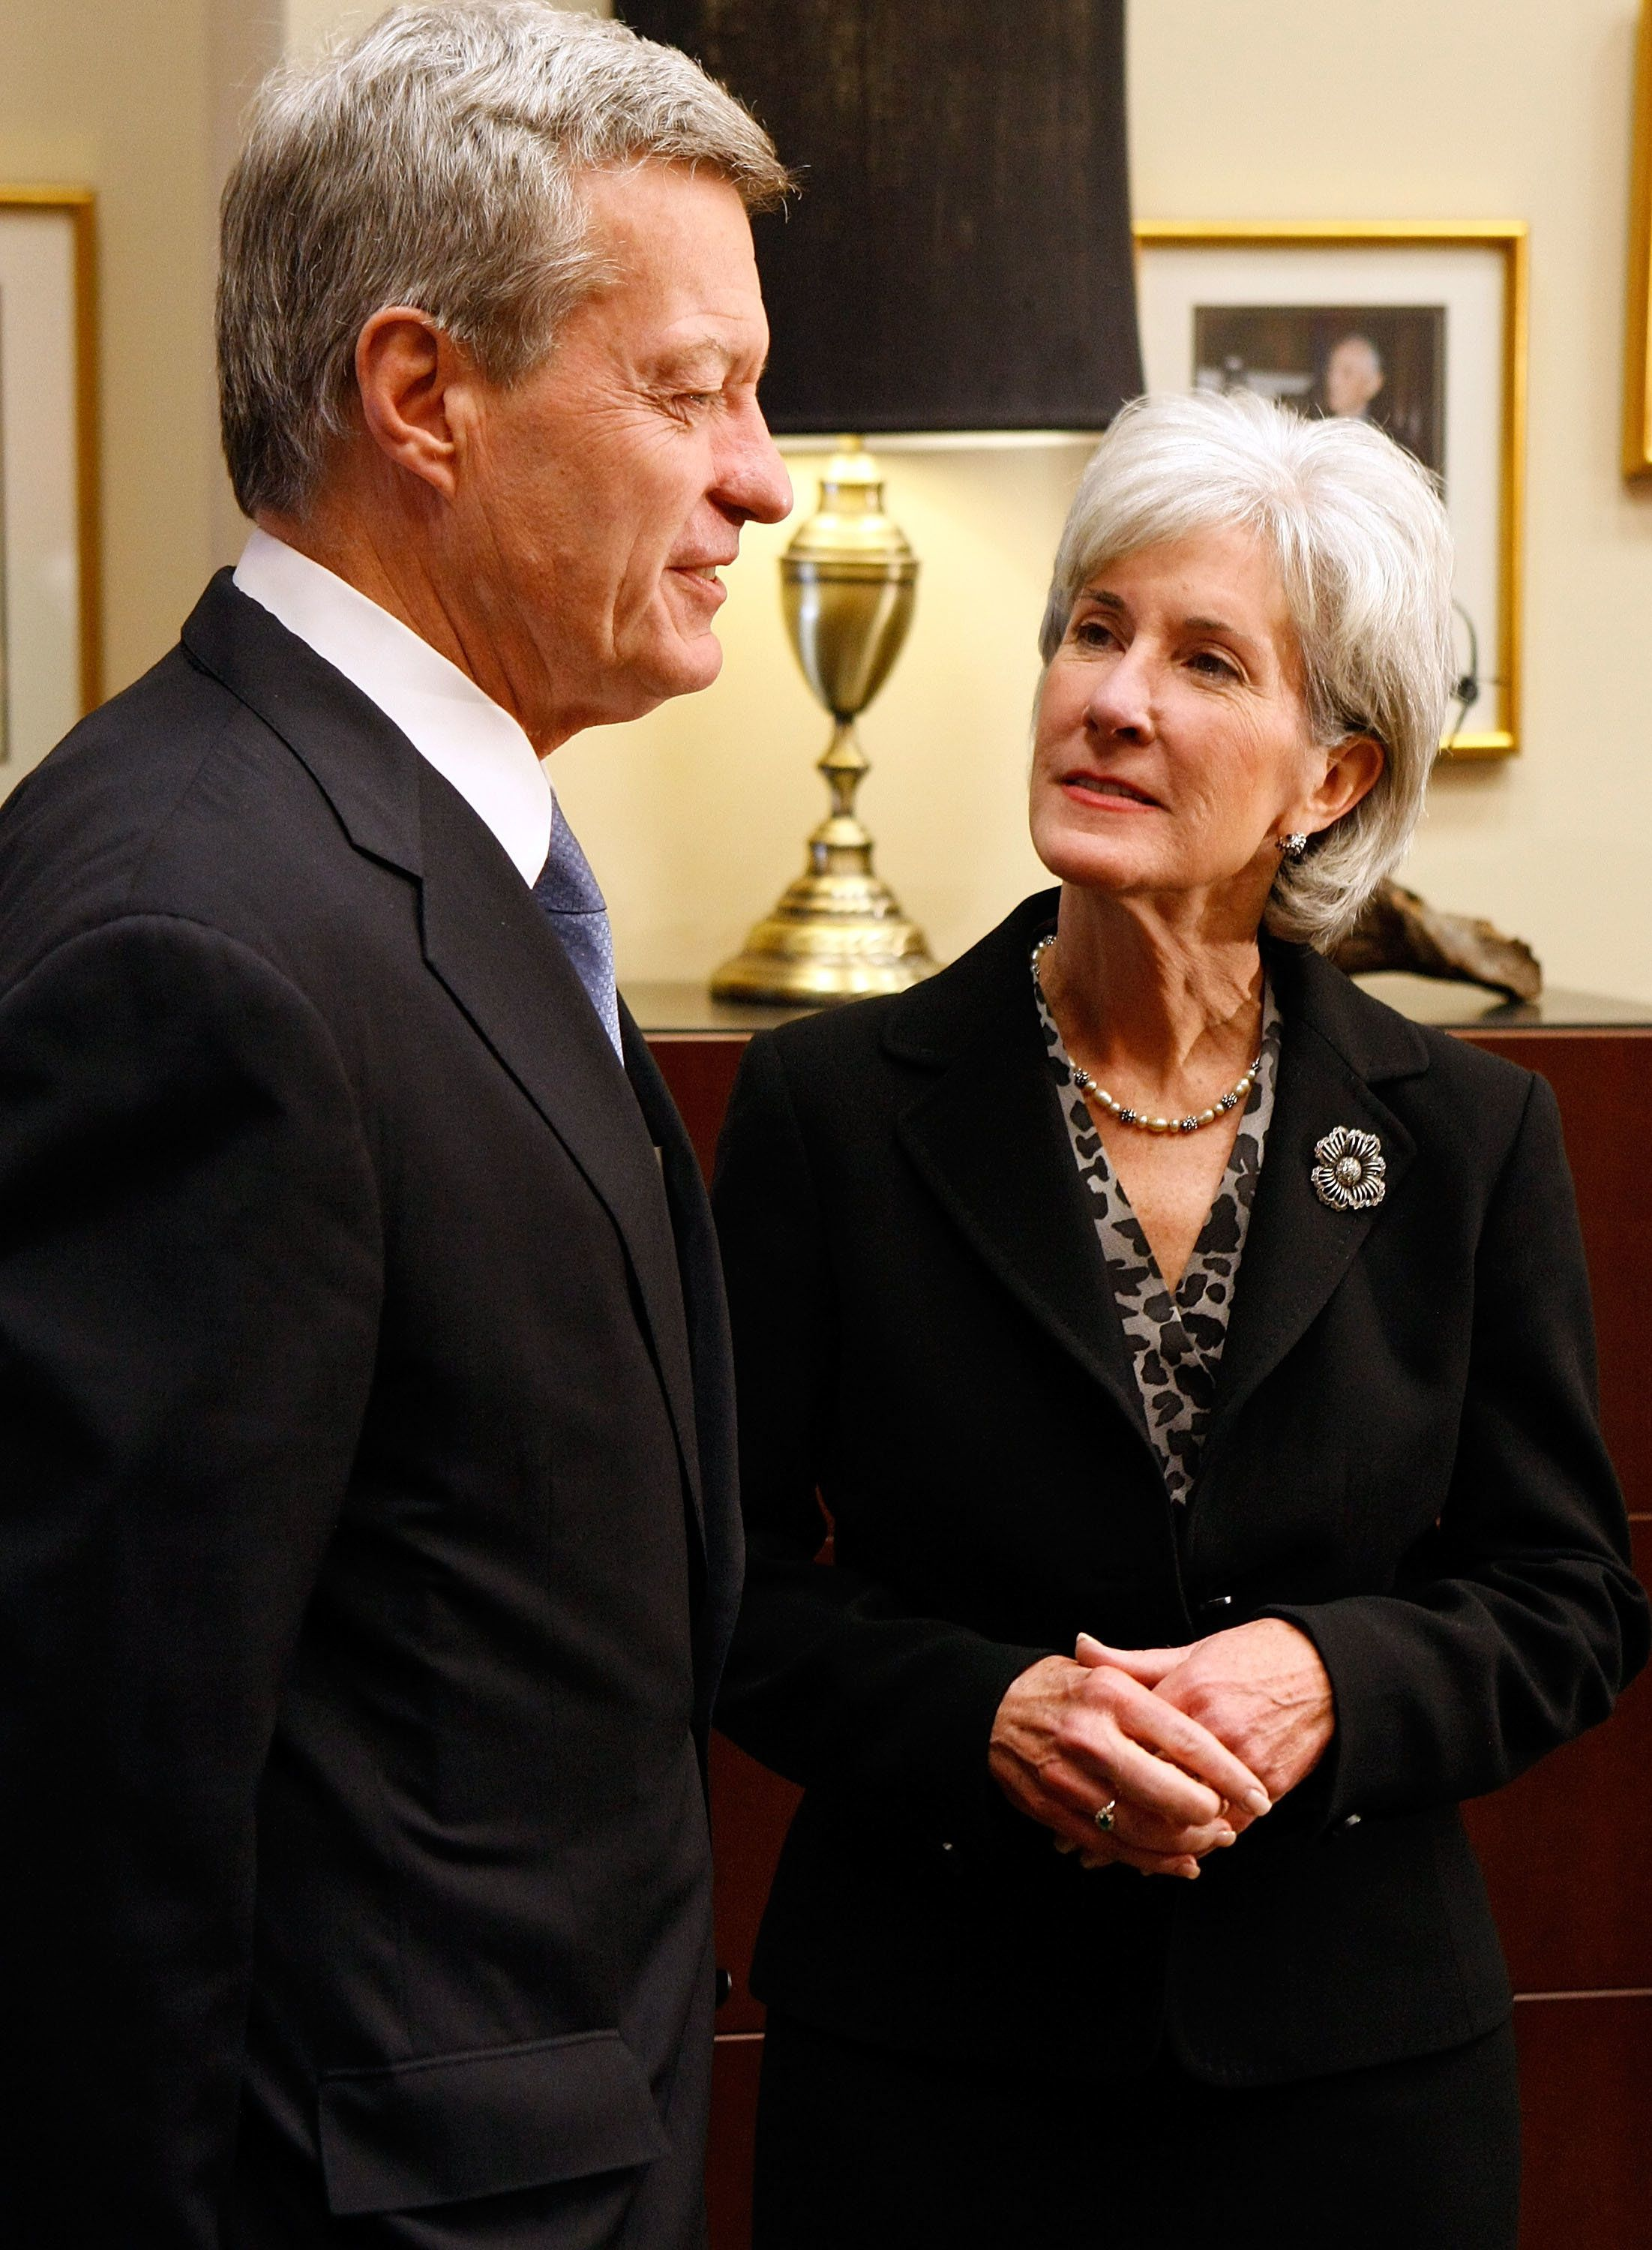 Then-Senate Finance Committee Chairman Max Baucus (D-Mont.) receives then-Health and Human Services Secretary-designate